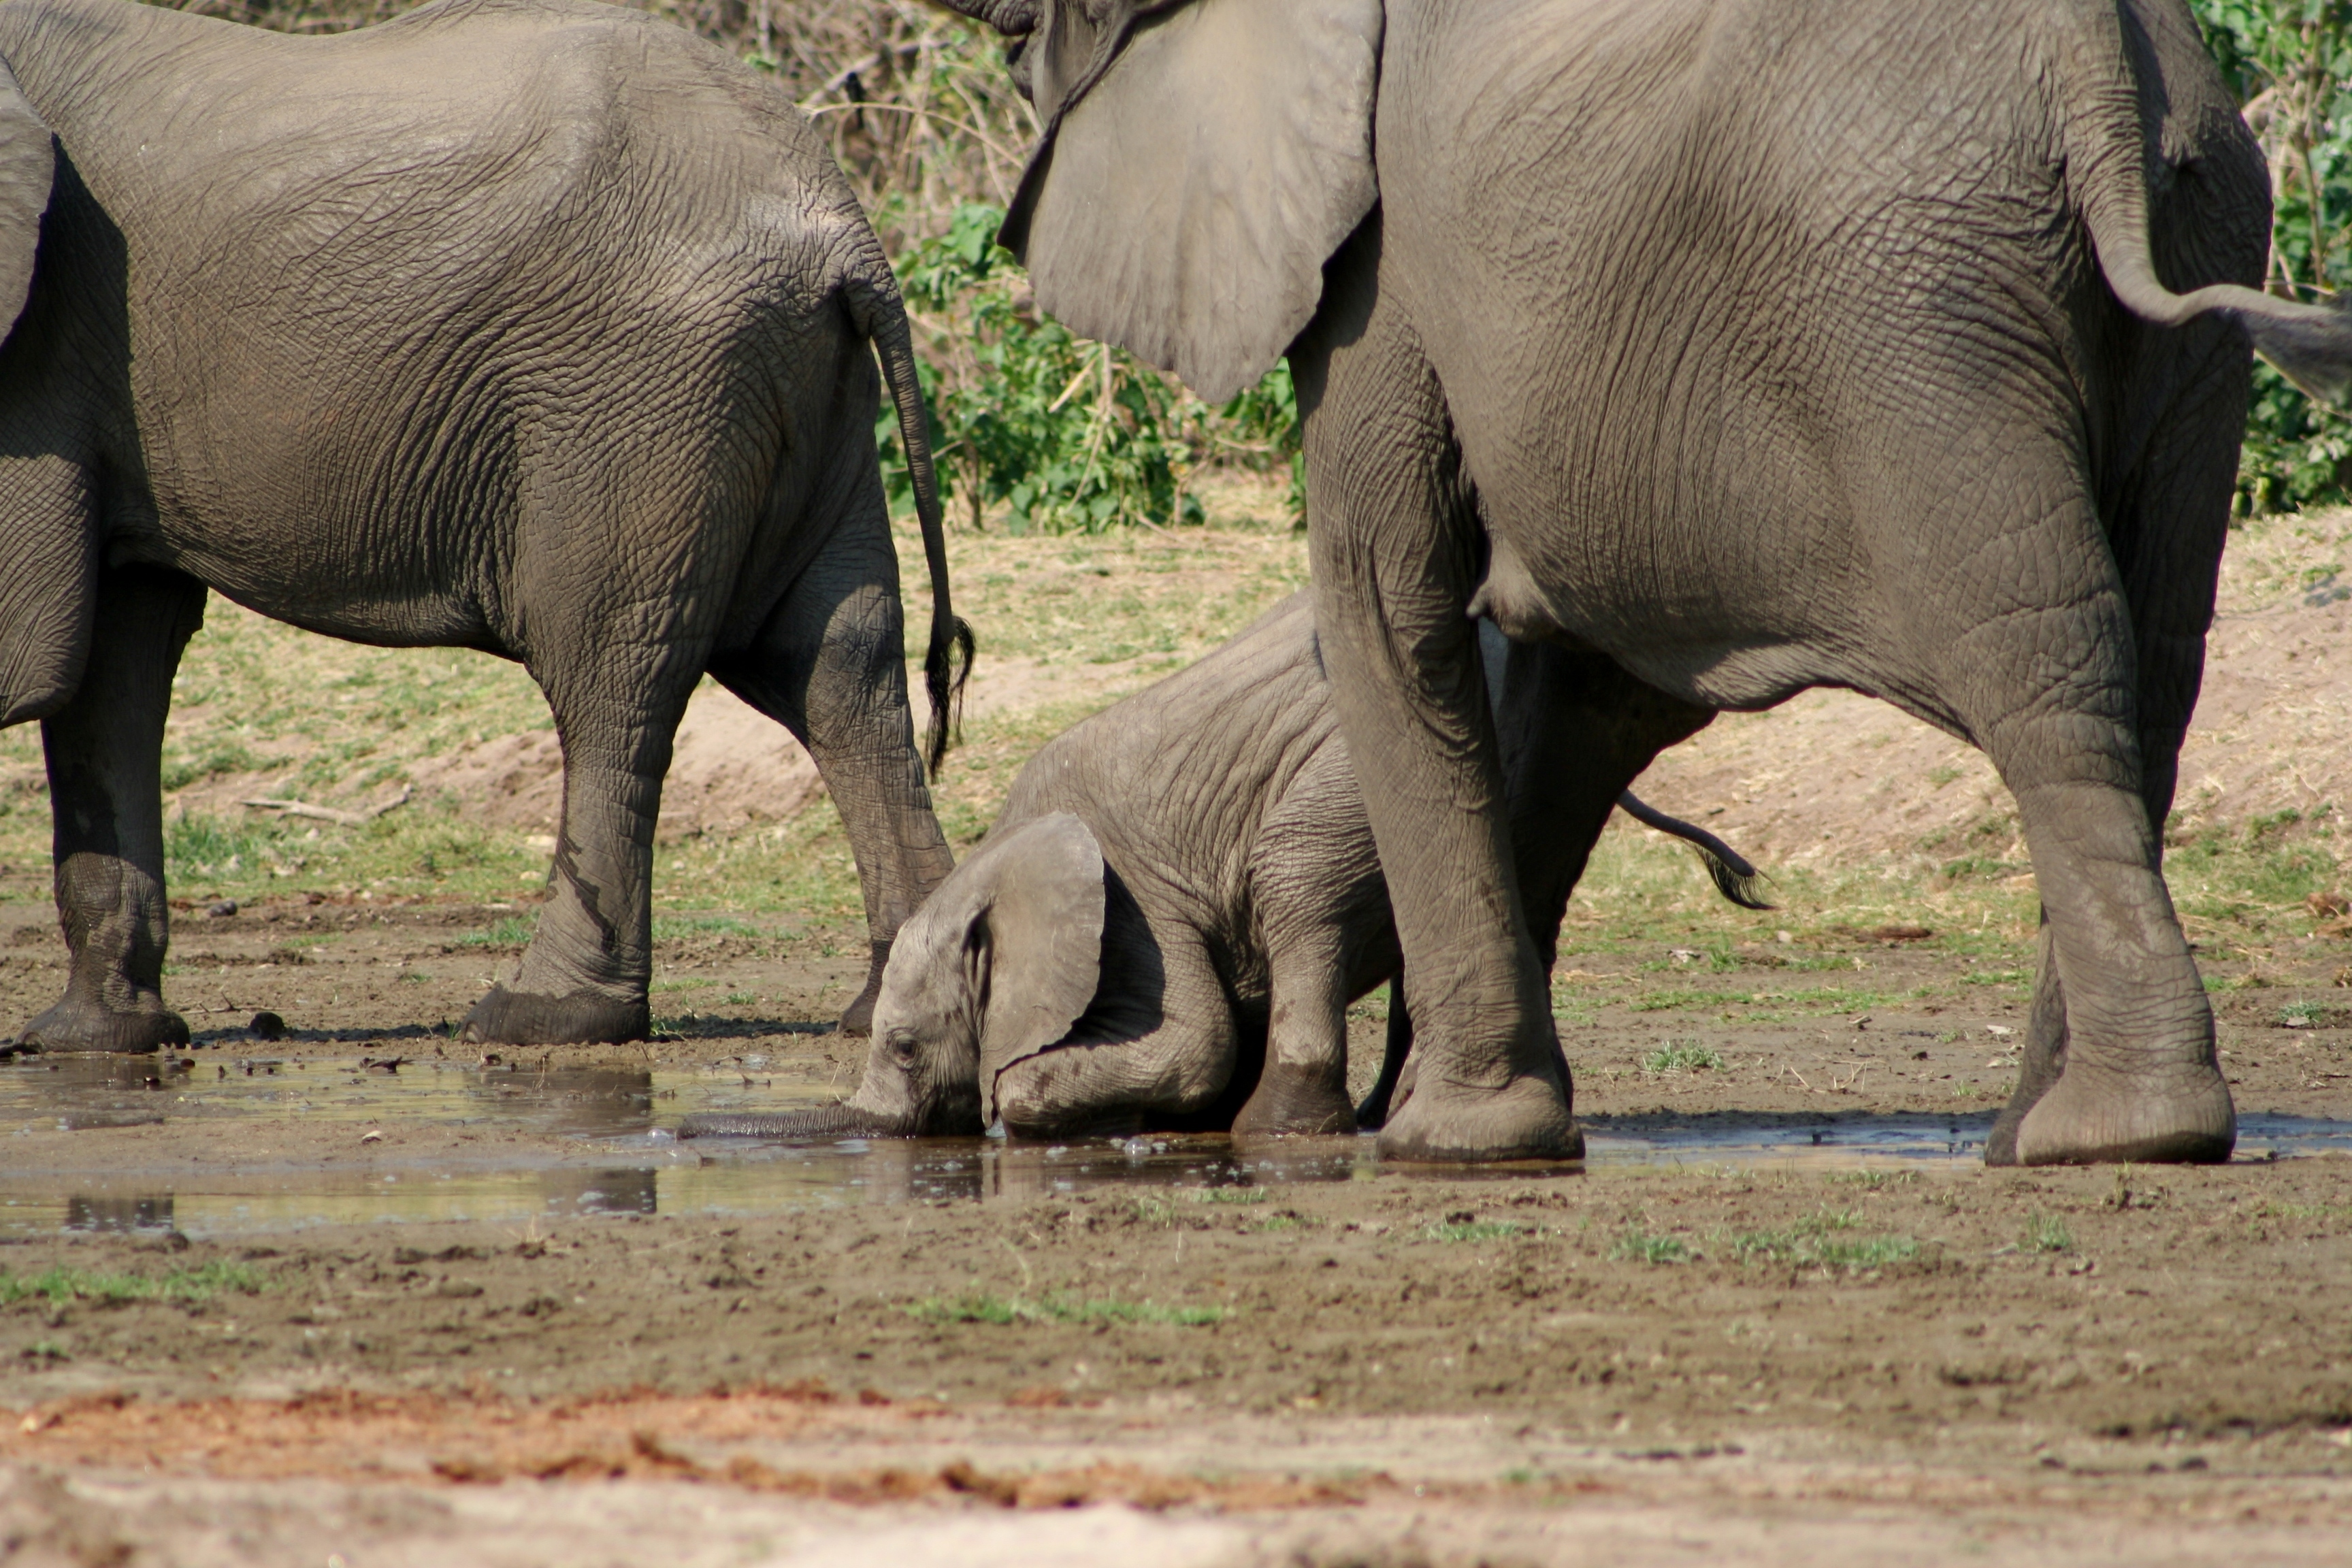 This is how baby elephants drink water (until they know better ...